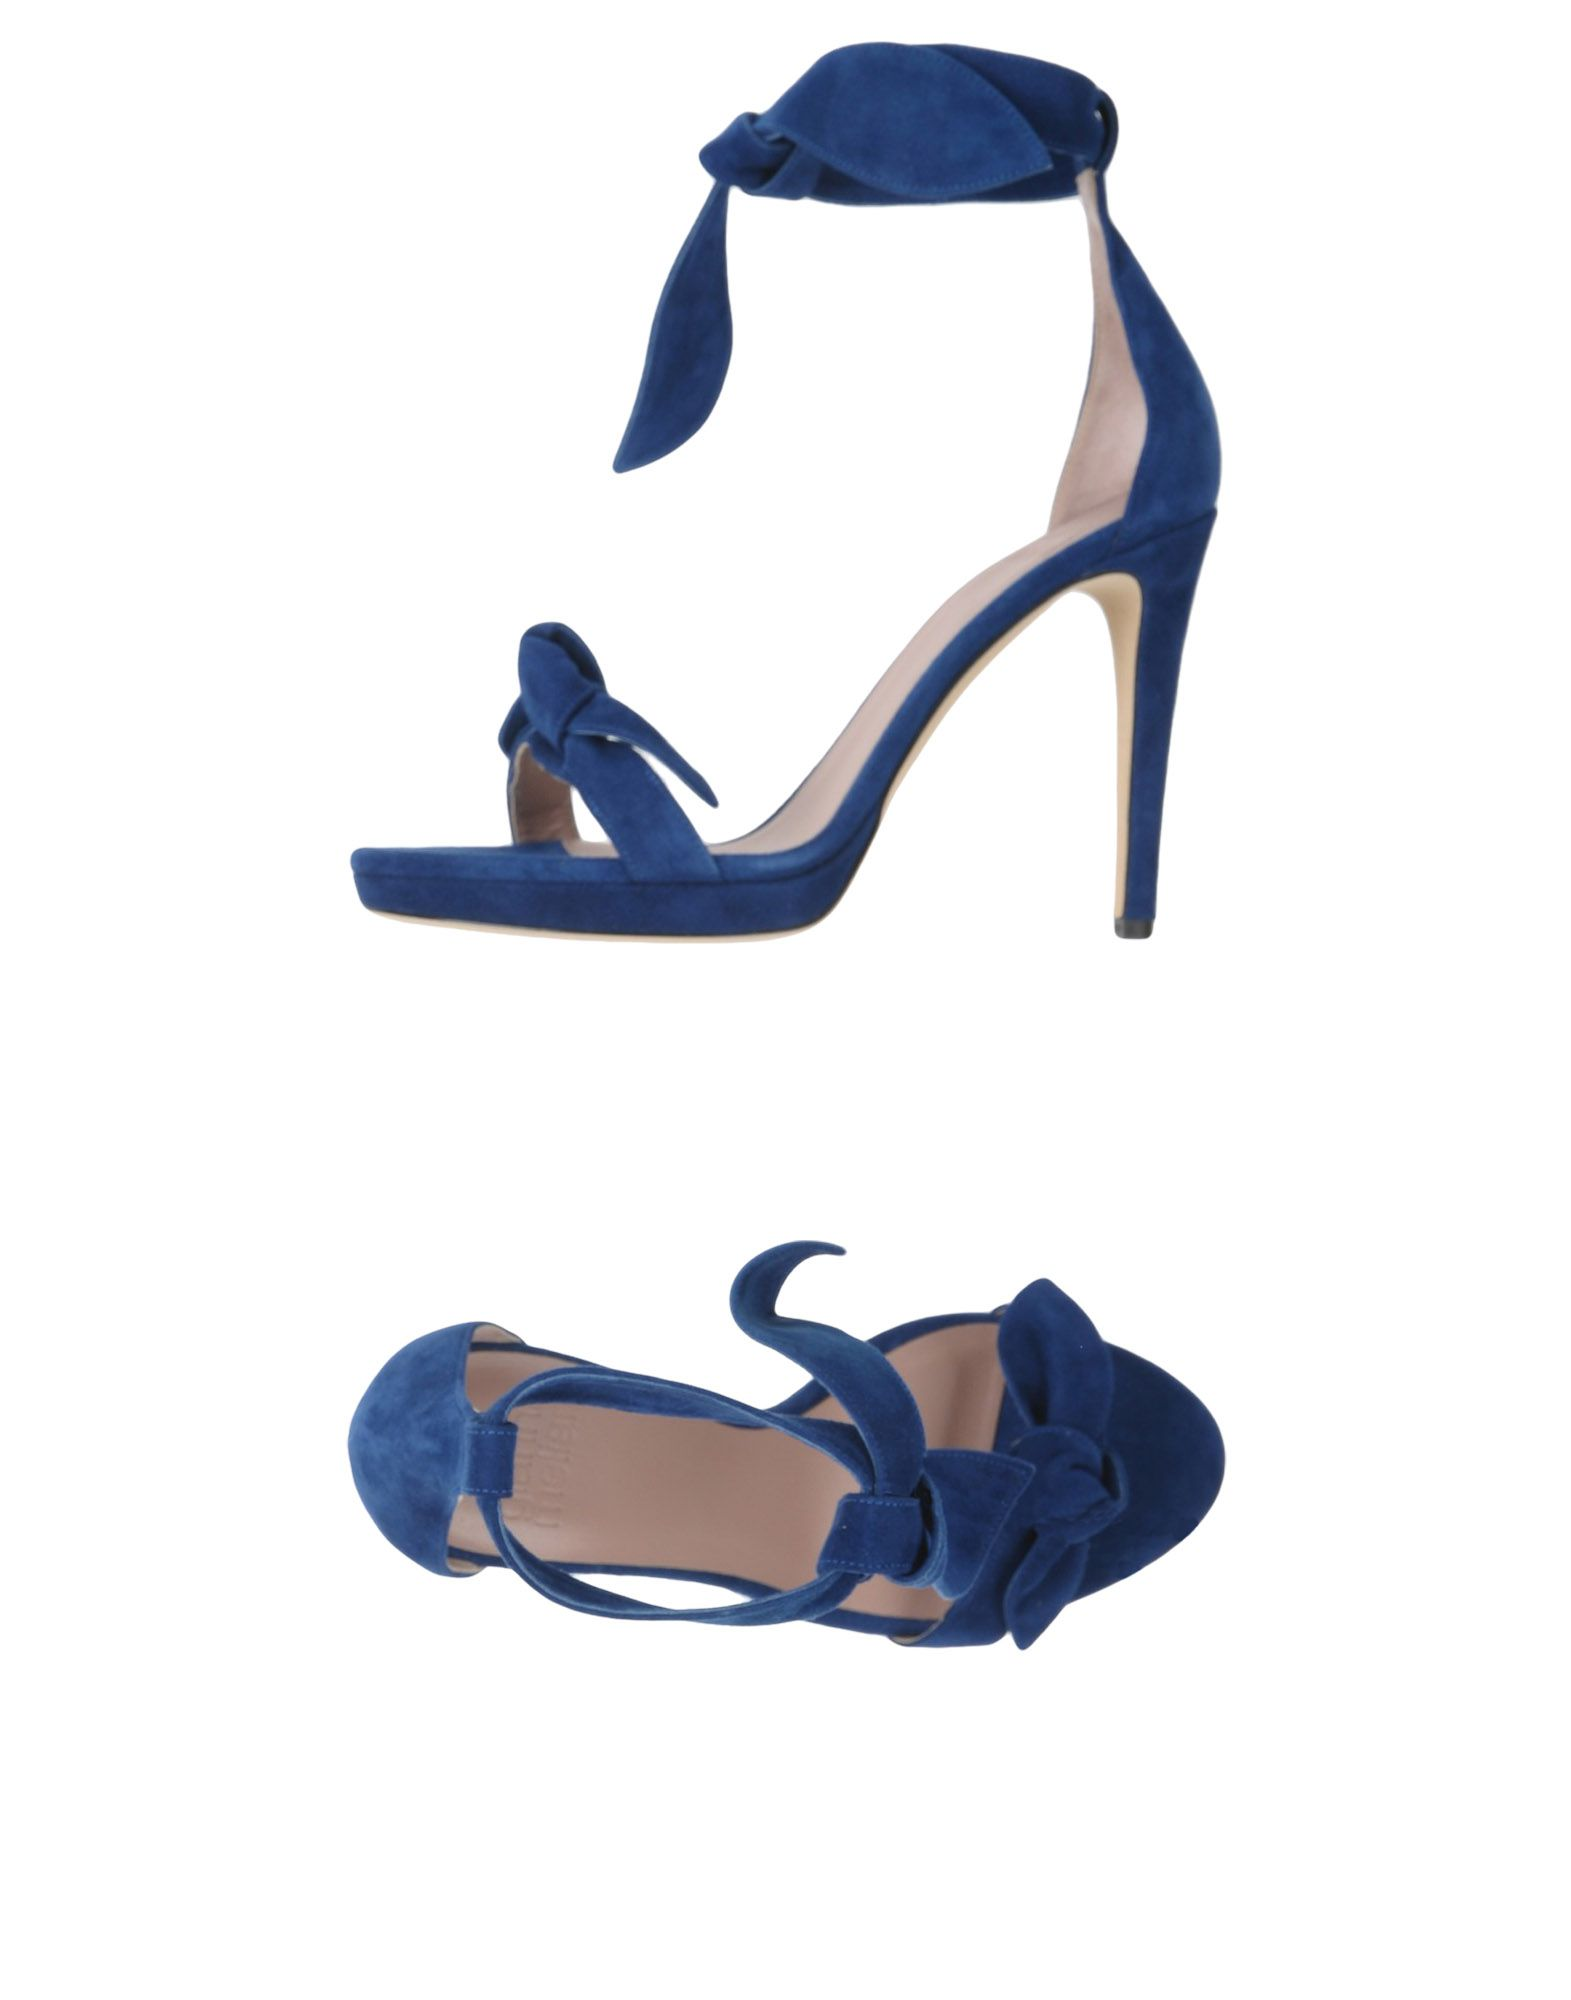 Sandales Gianna Meliani Luxury Femme - Sandales Gianna Meliani Luxury sur